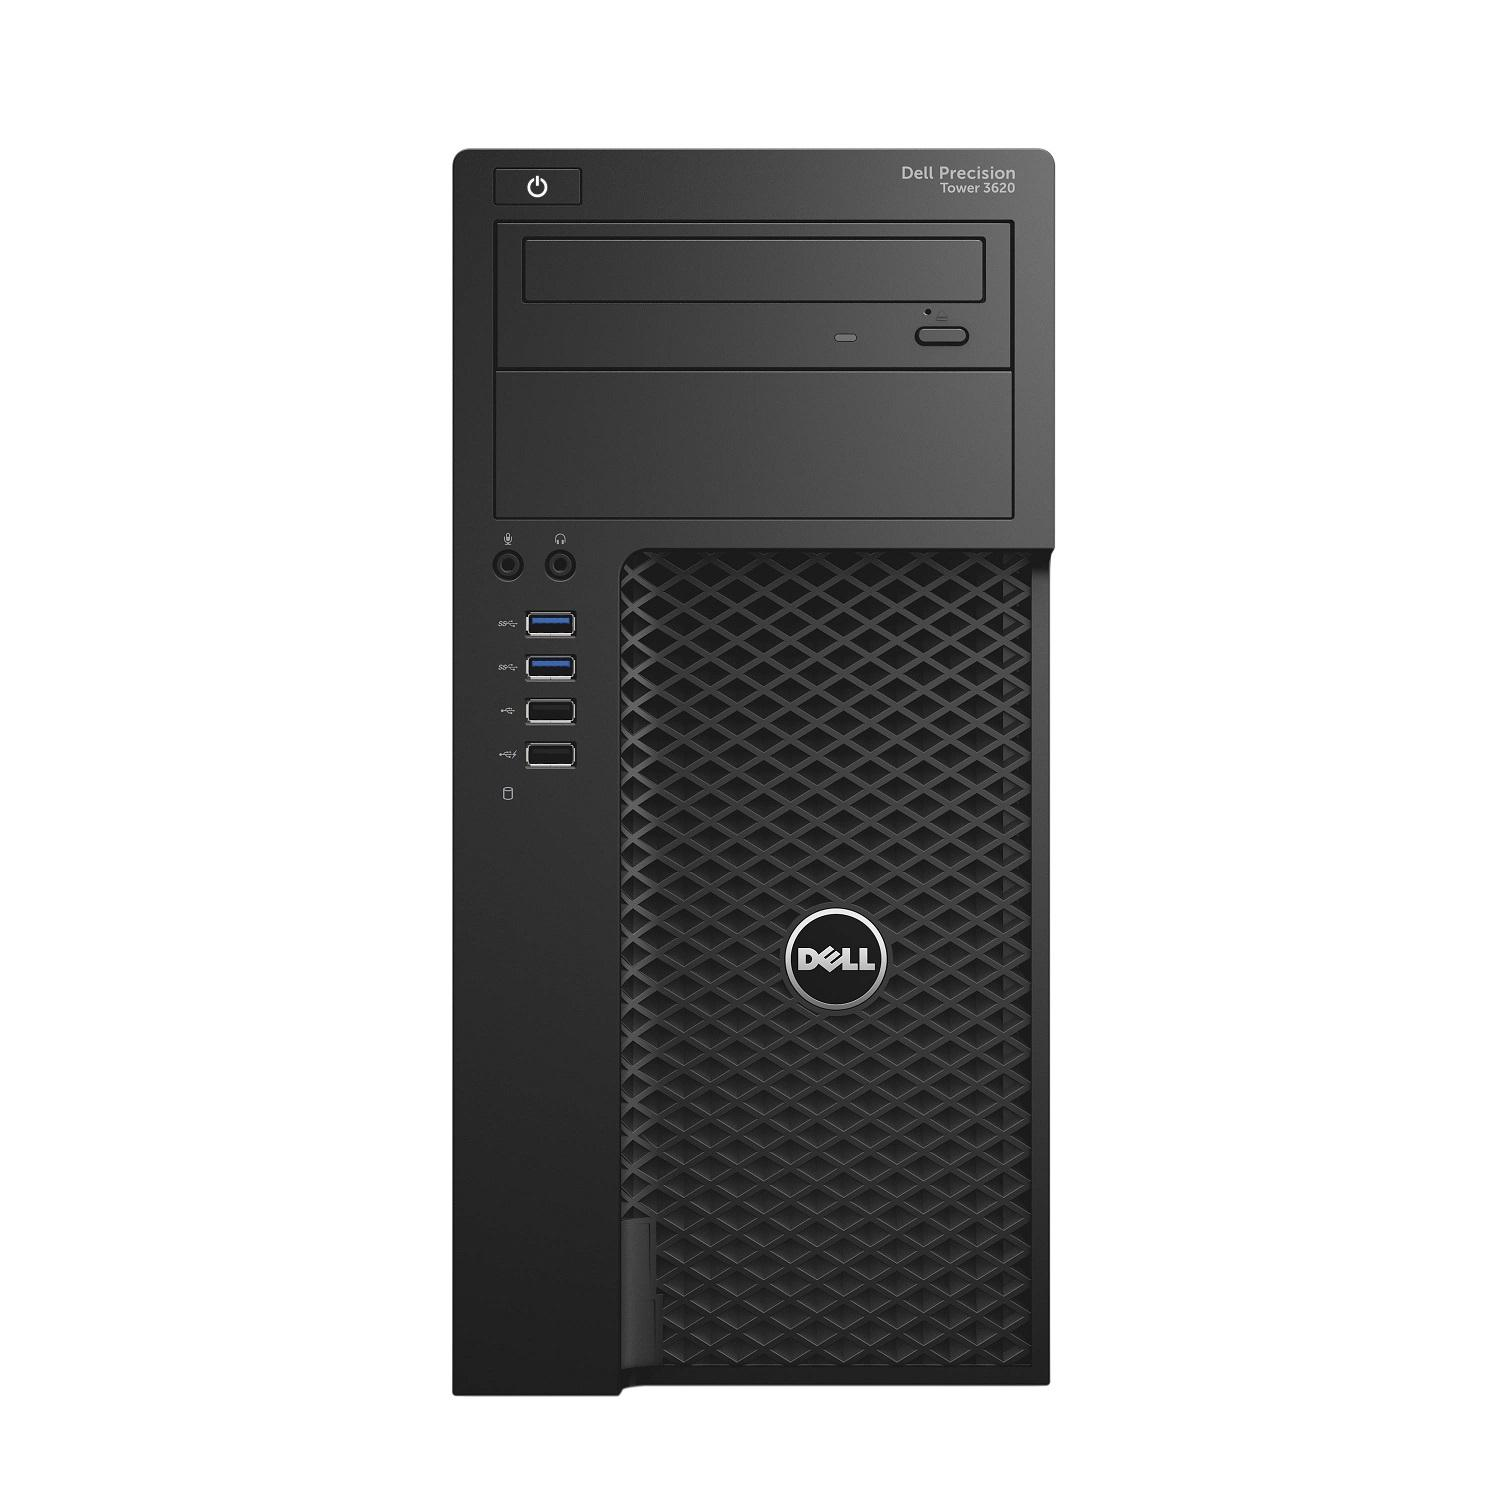 Dell OptiPlex 3000 Series - 3050 Small Form Factor i5 / 8GB / 1TB